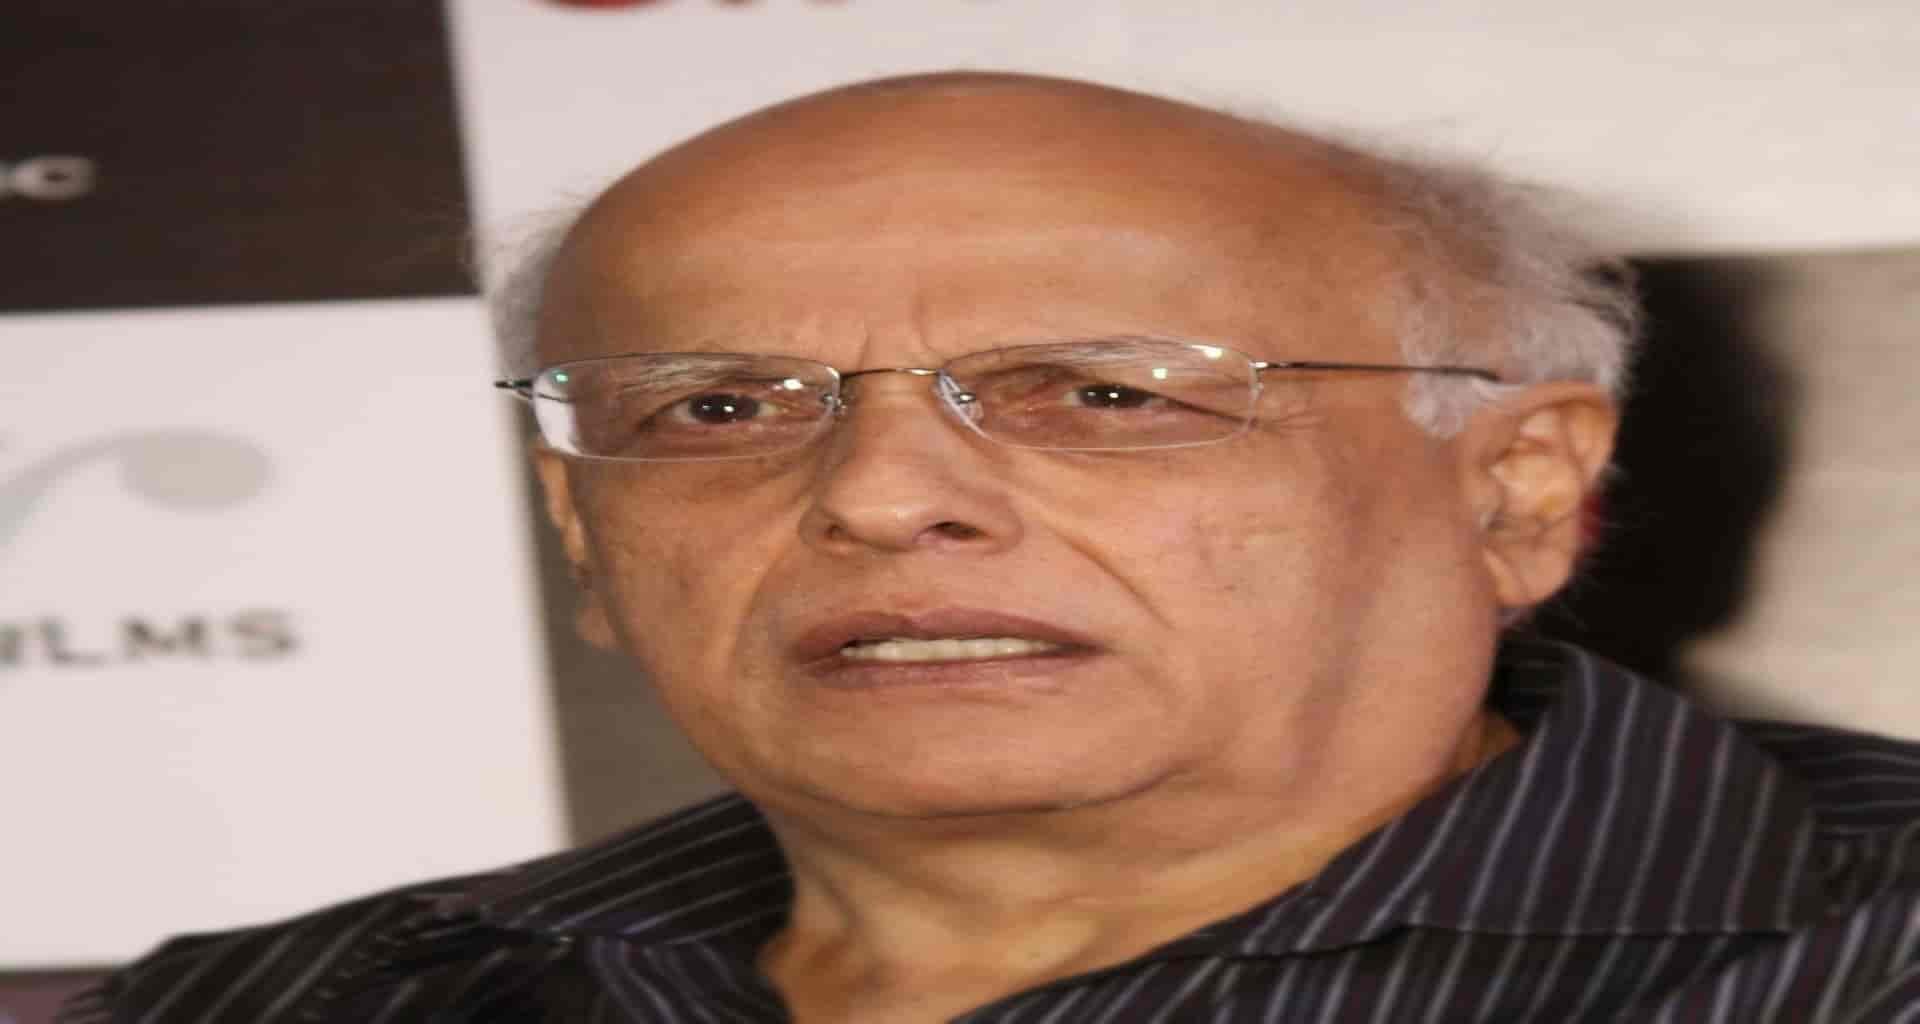 Mahesh Bhatt appears before National Women's Commission in sexual harassment case against women in the name of modeling